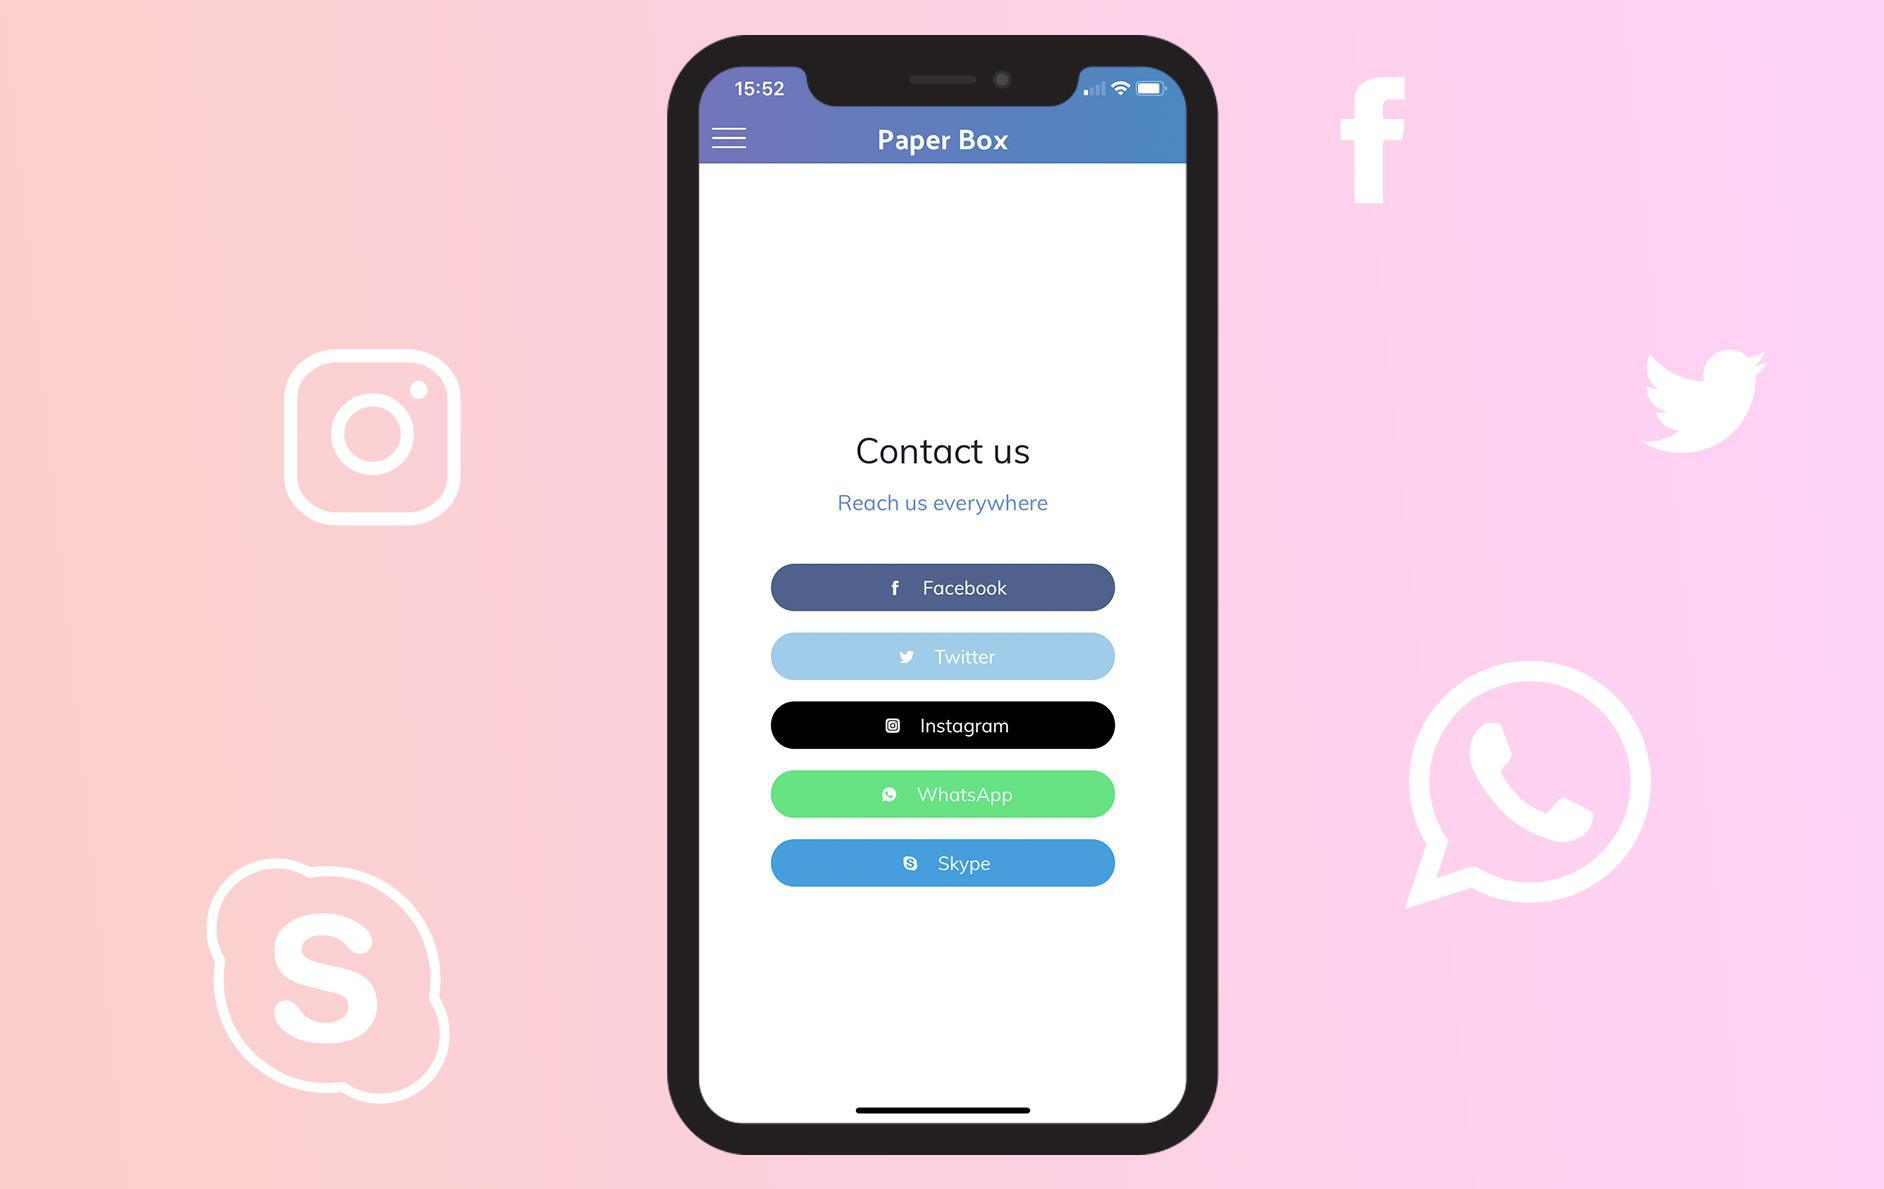 Instagram, WhatsApp & Skype get Invited in your Contact section